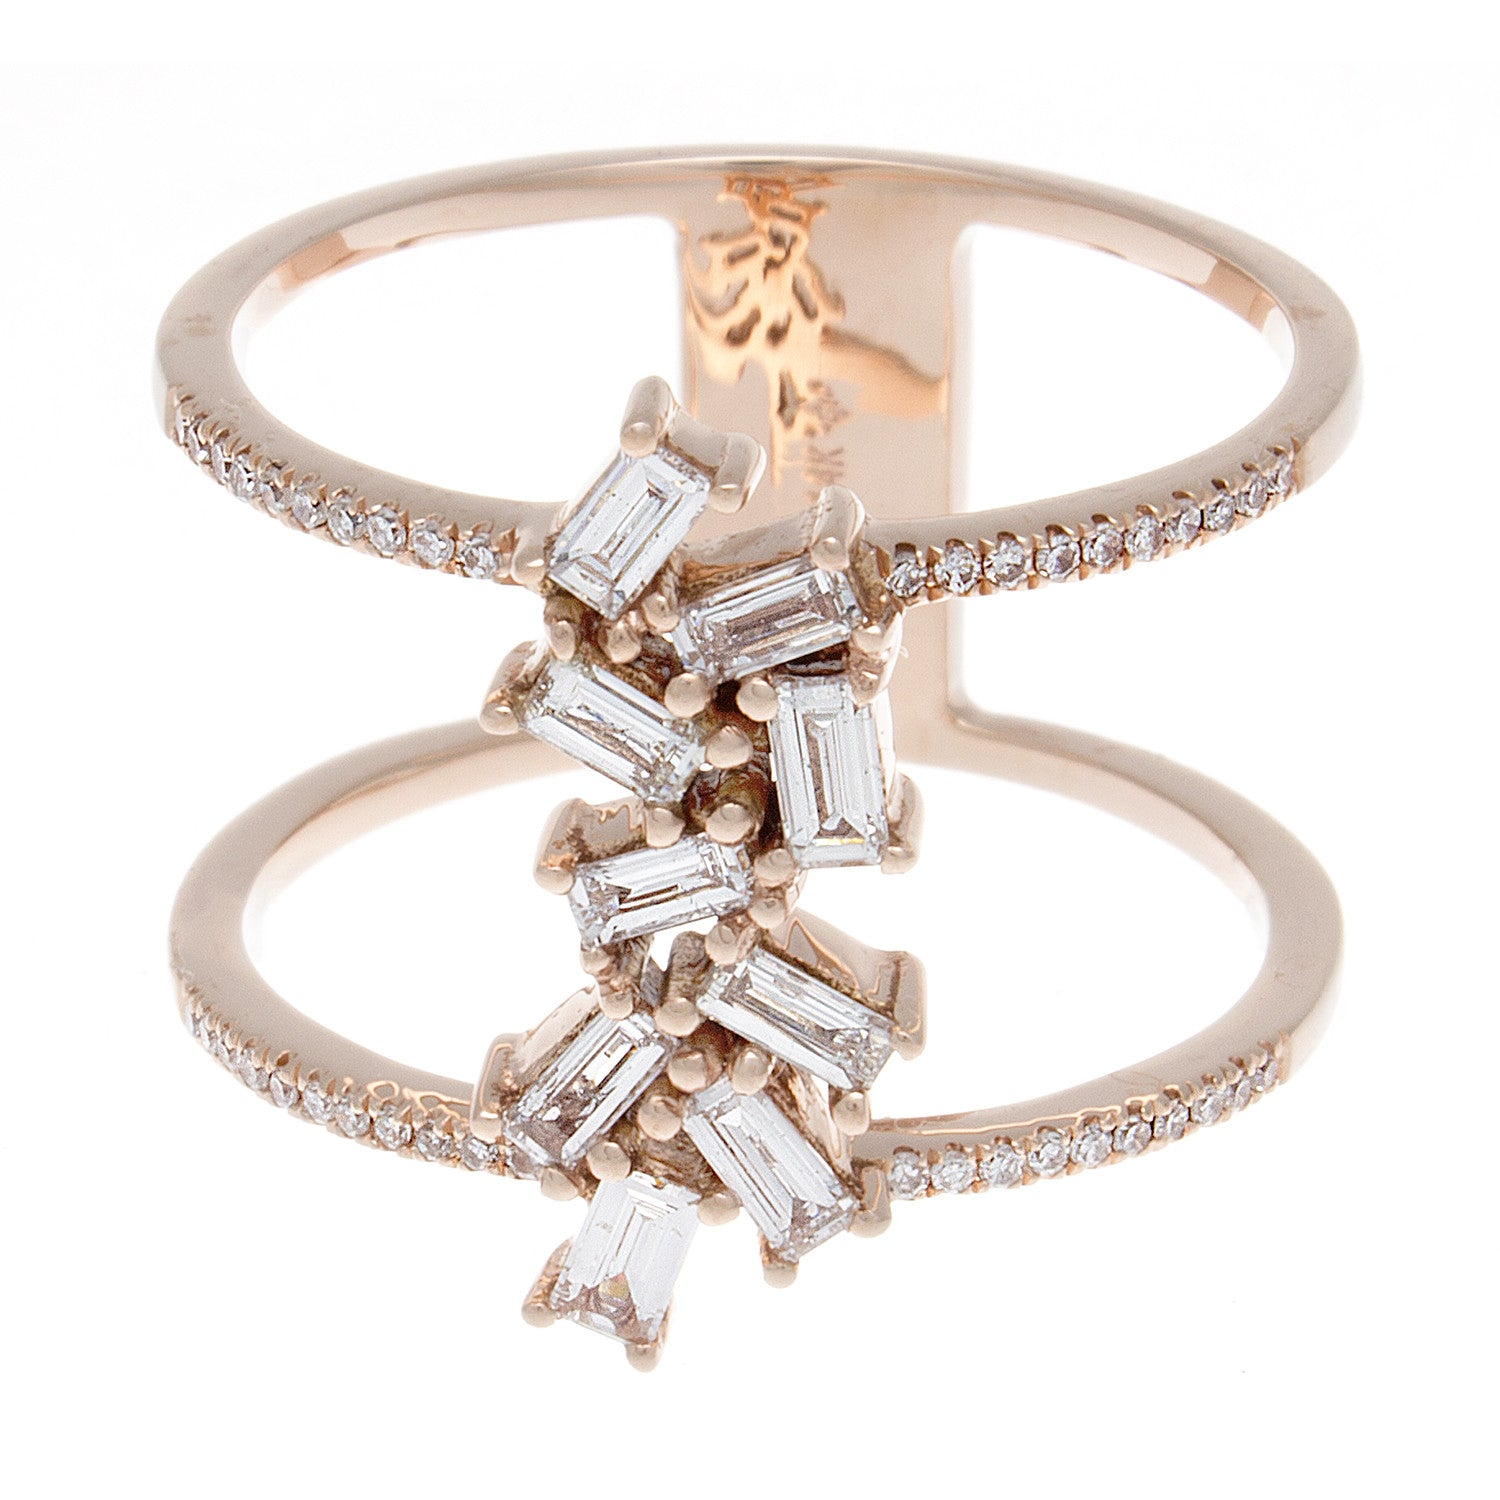 Baguette Diamond Double Band 14K Rose Gold Ring - SOLD